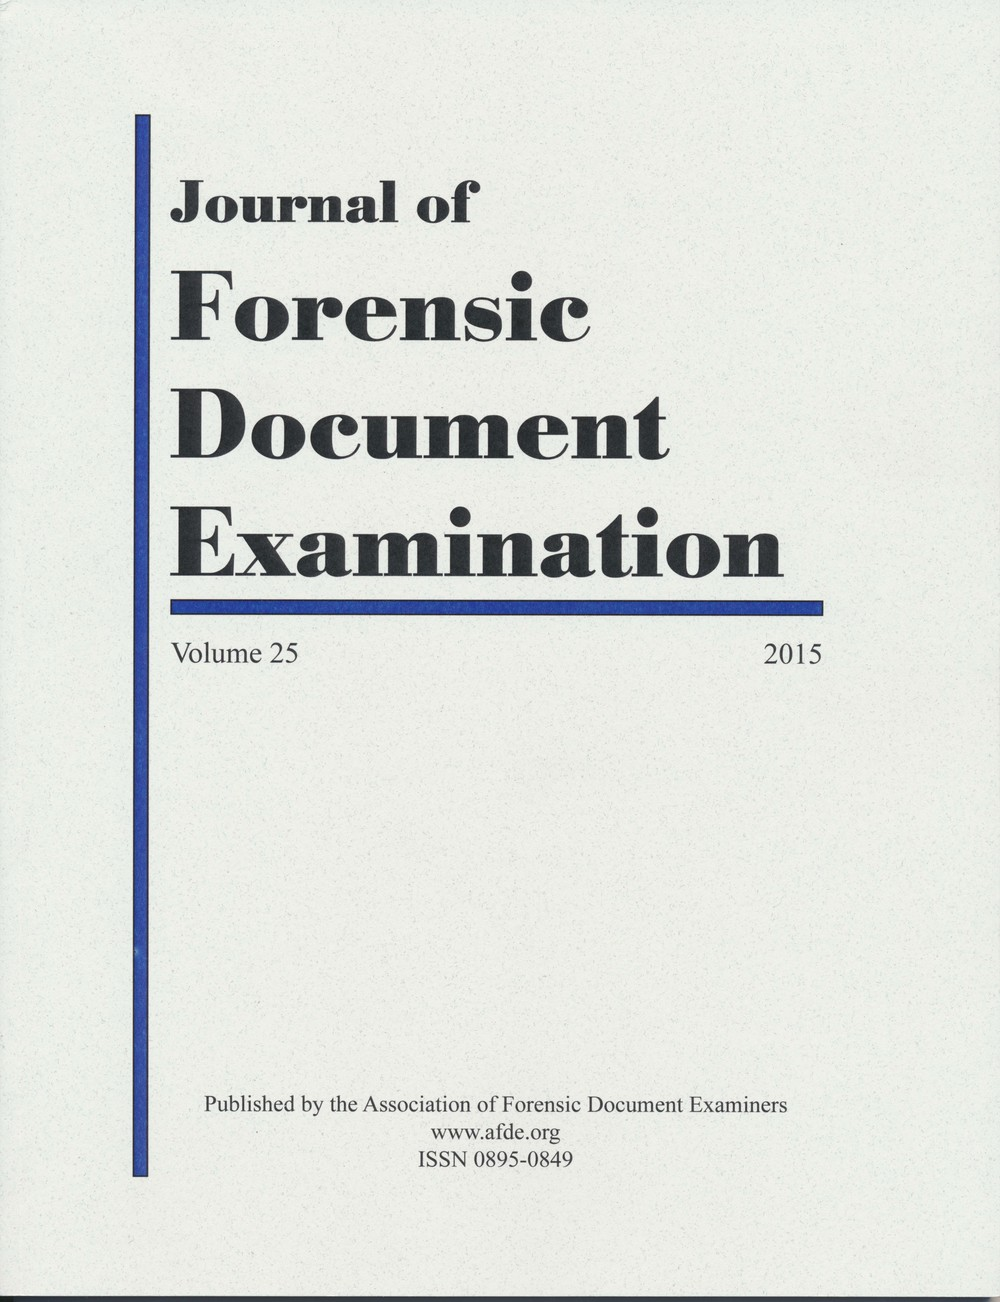 Journal of Forensic Document Examination